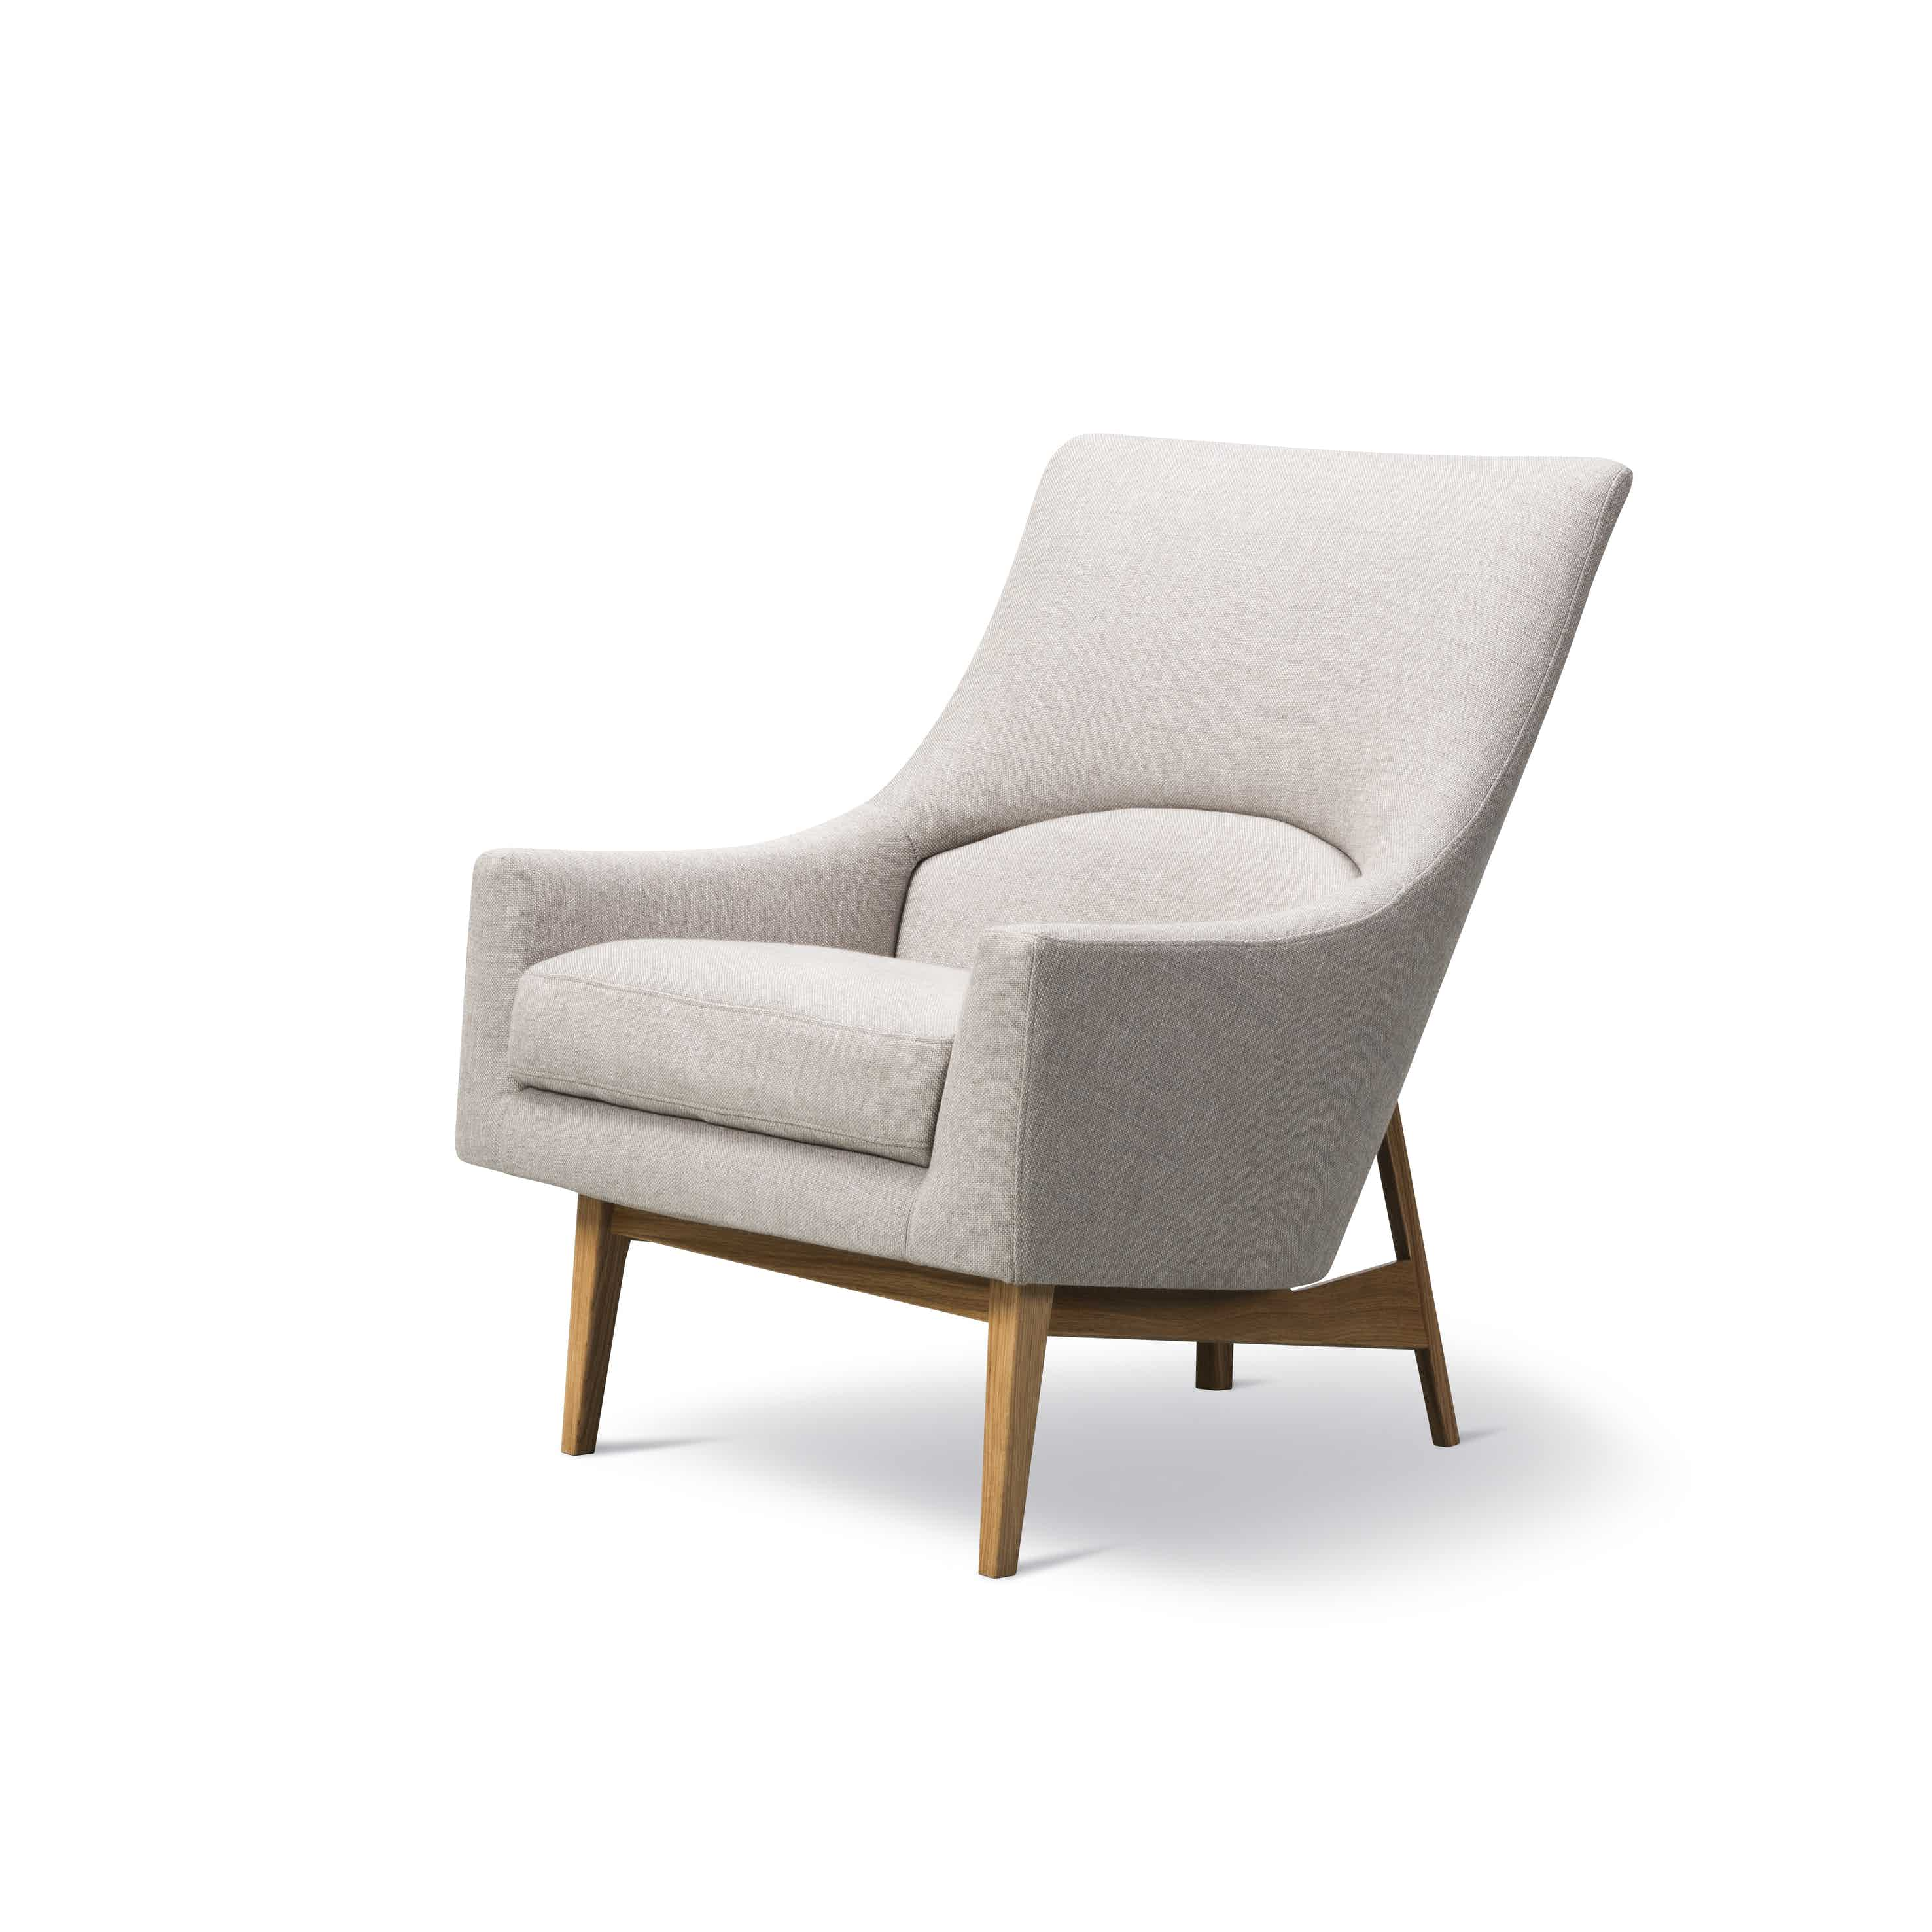 Fredericia A Chair Angle Haute Living